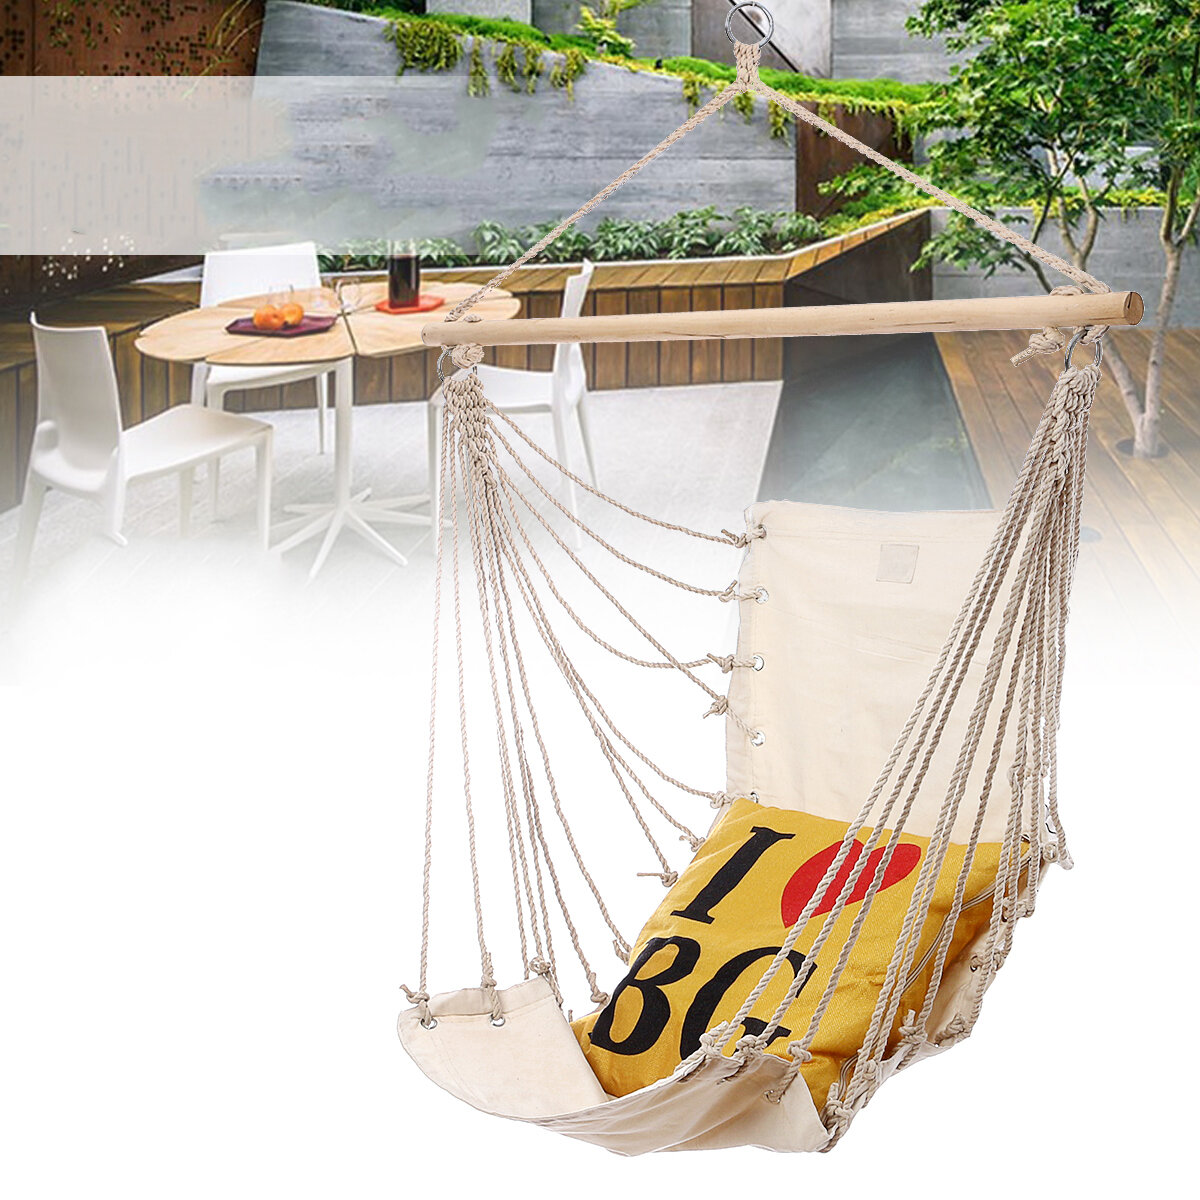 17x32inch Outdoor Hammock Chair Hanging Chairs Swing Cotton Rope